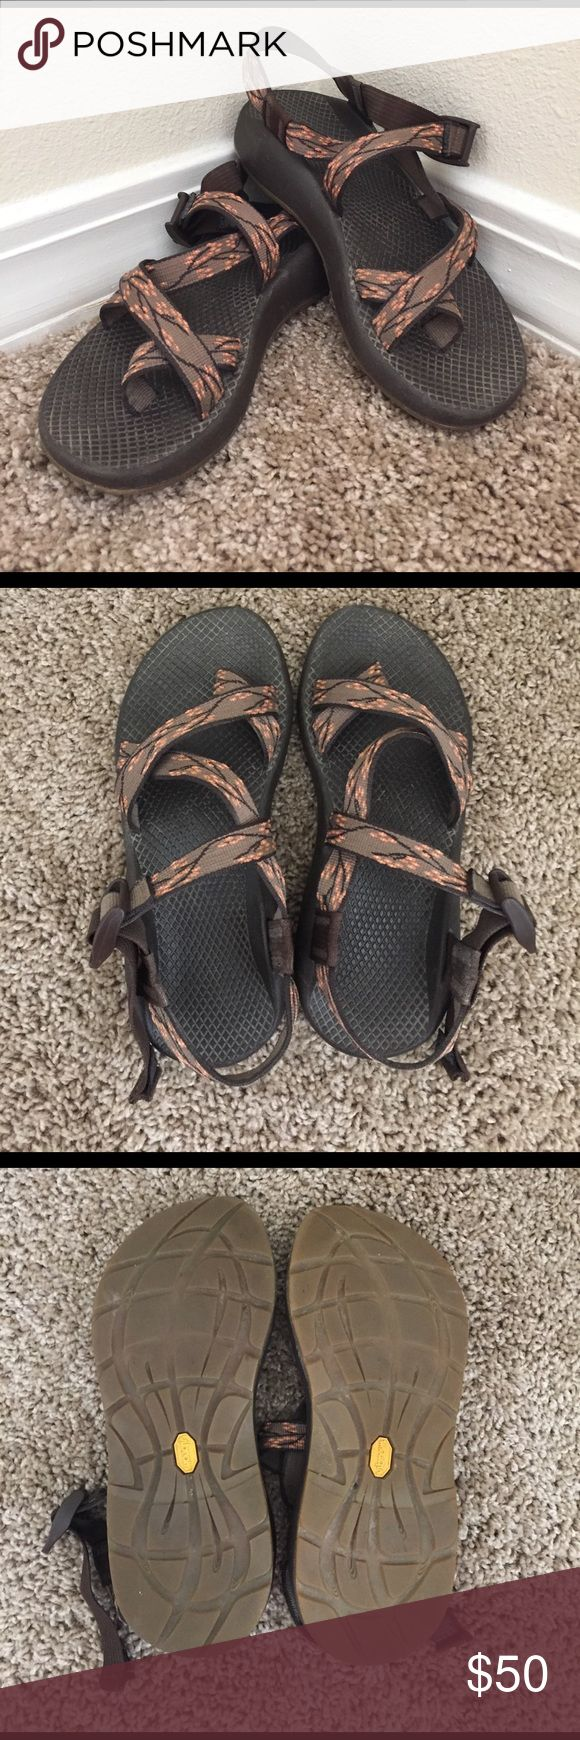 Women's Chaco Sandals Womens Chaco Sandals. Brown and Blossom coloring. Gently used, excellent condition! Perfect for outdoor adventures. Completely customizable with fit of the straps. Chacos Shoes Sandals